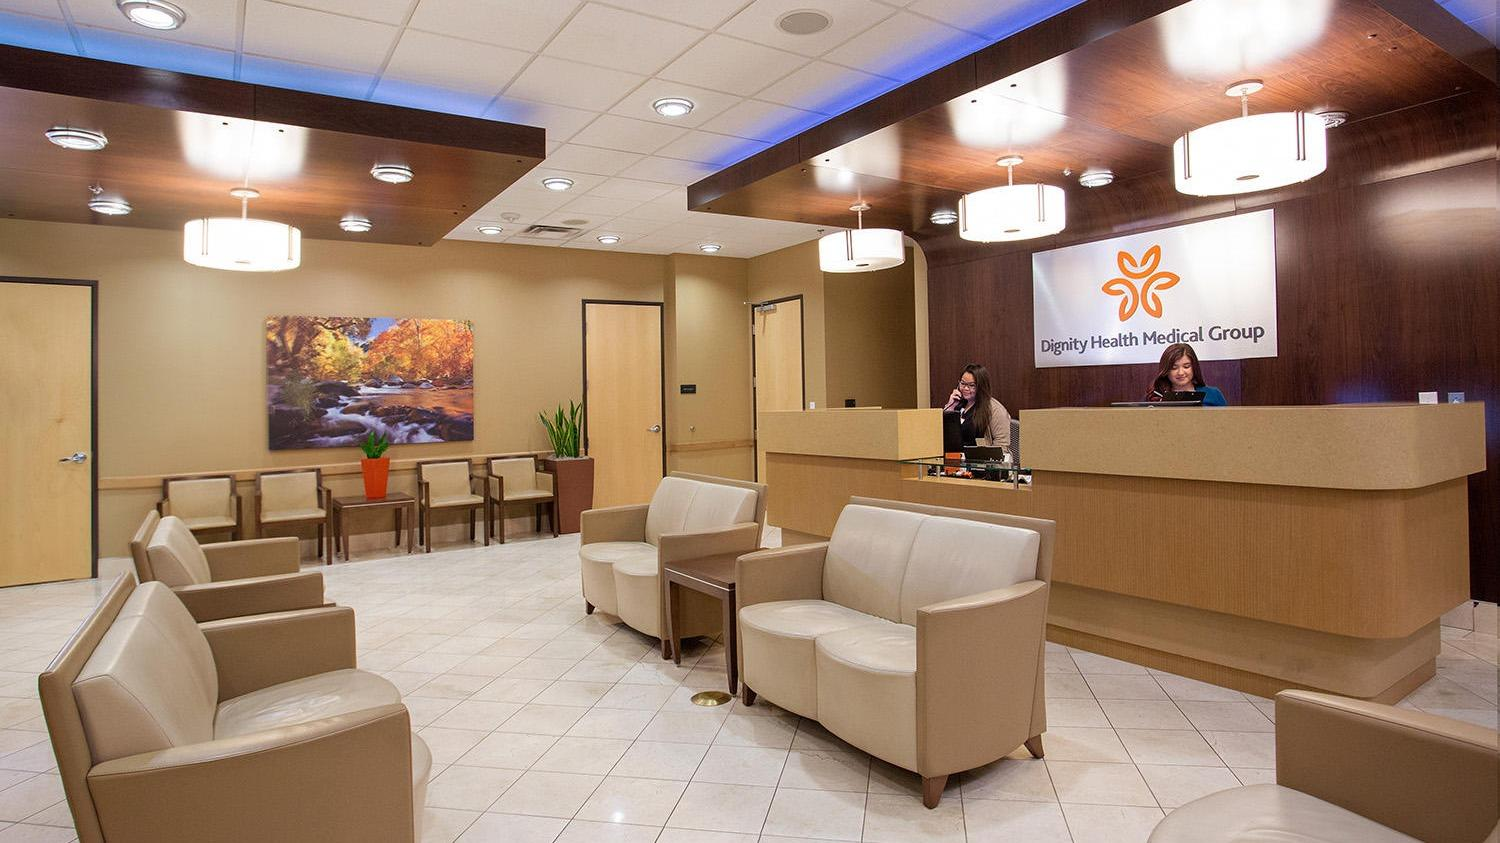 Dignity Health Medical Group - San Martin - Las Vegas, NV